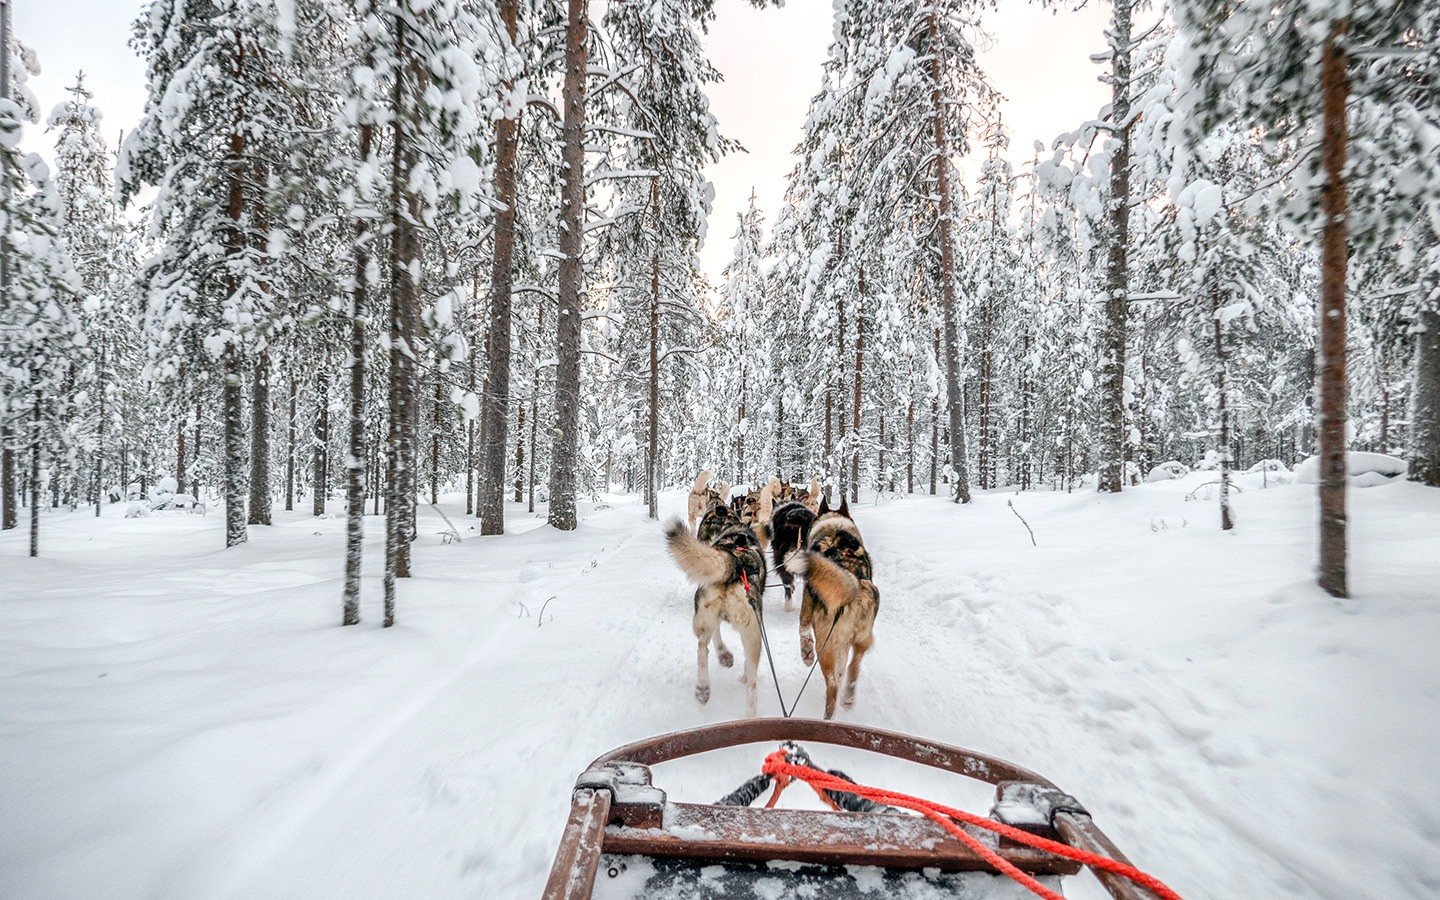 Husky sled ride in Rovaniemi, Finnish Lapland